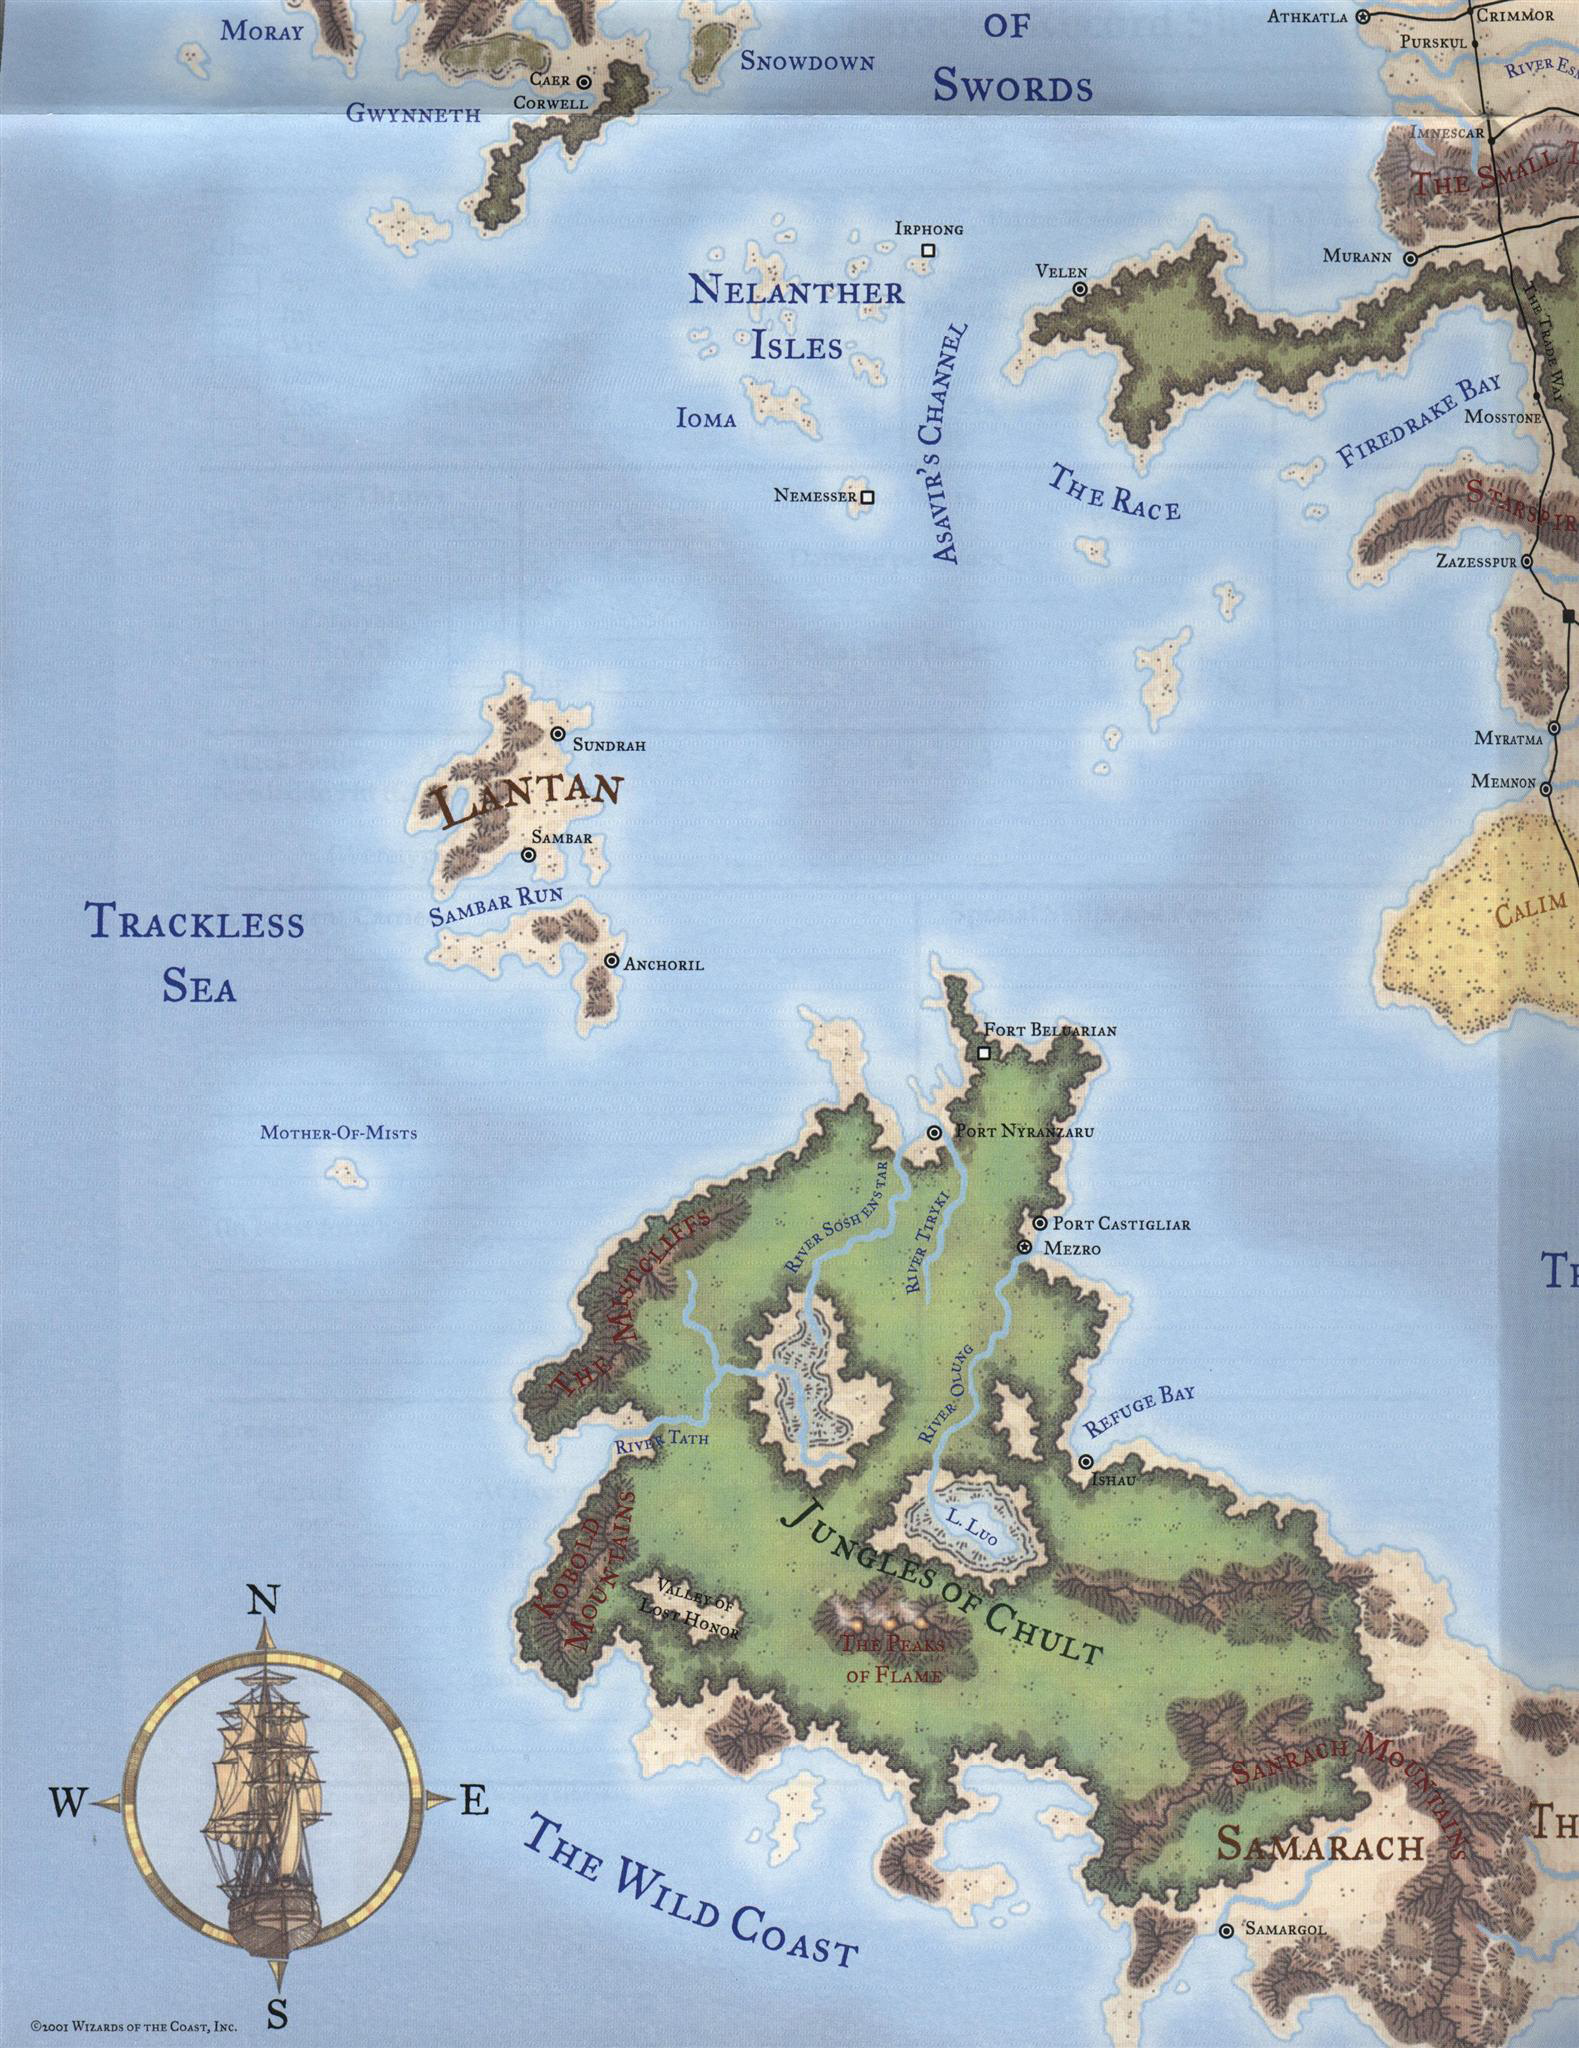 D&D The Trackless Sea with the Sea of Swords to the North Faerun